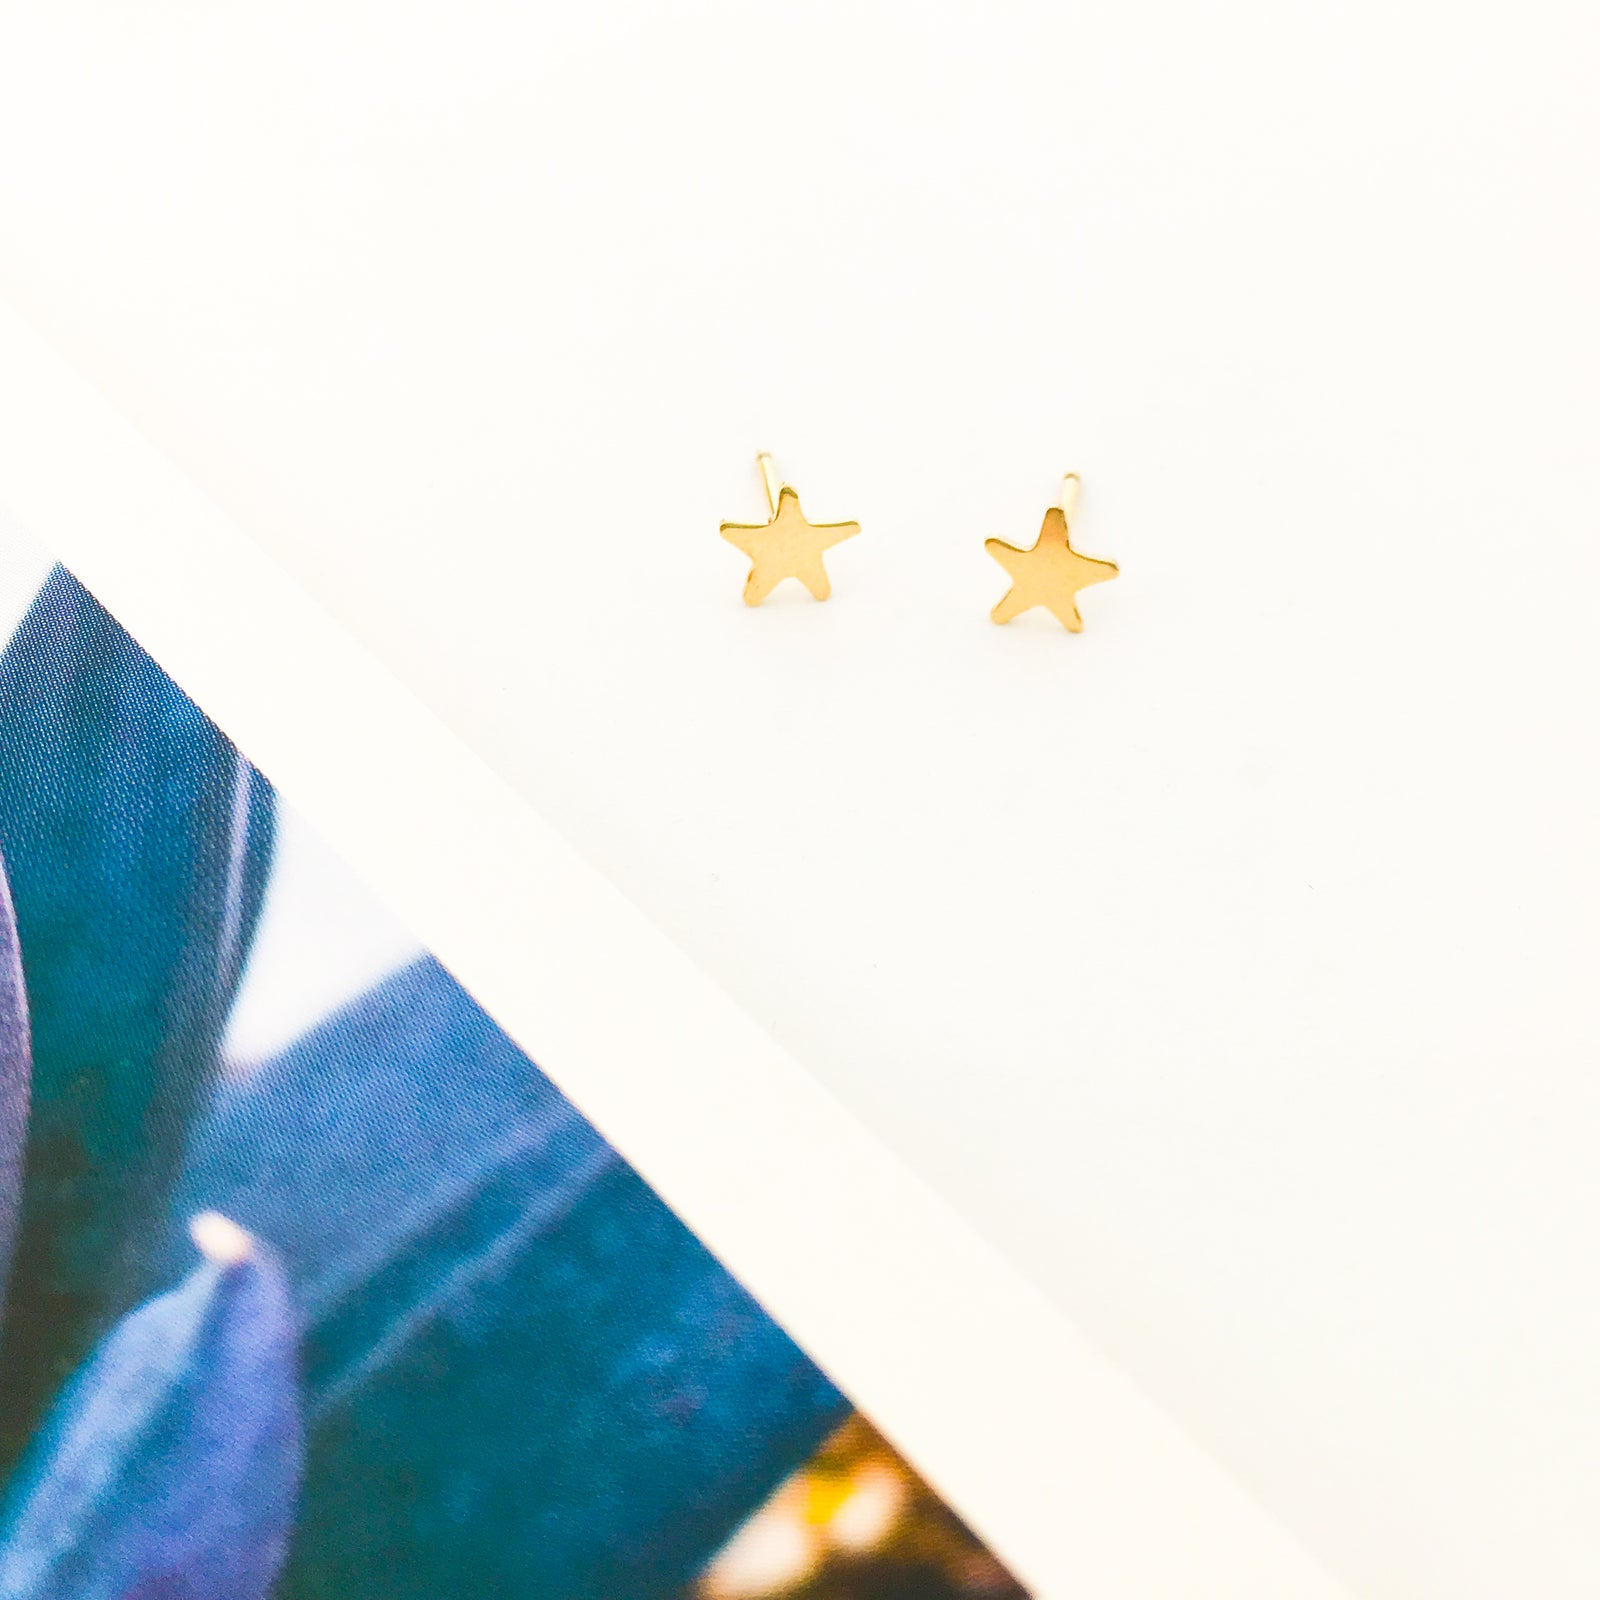 MINI STAR STUD EARRINGS | 14K GOLD-FILLED